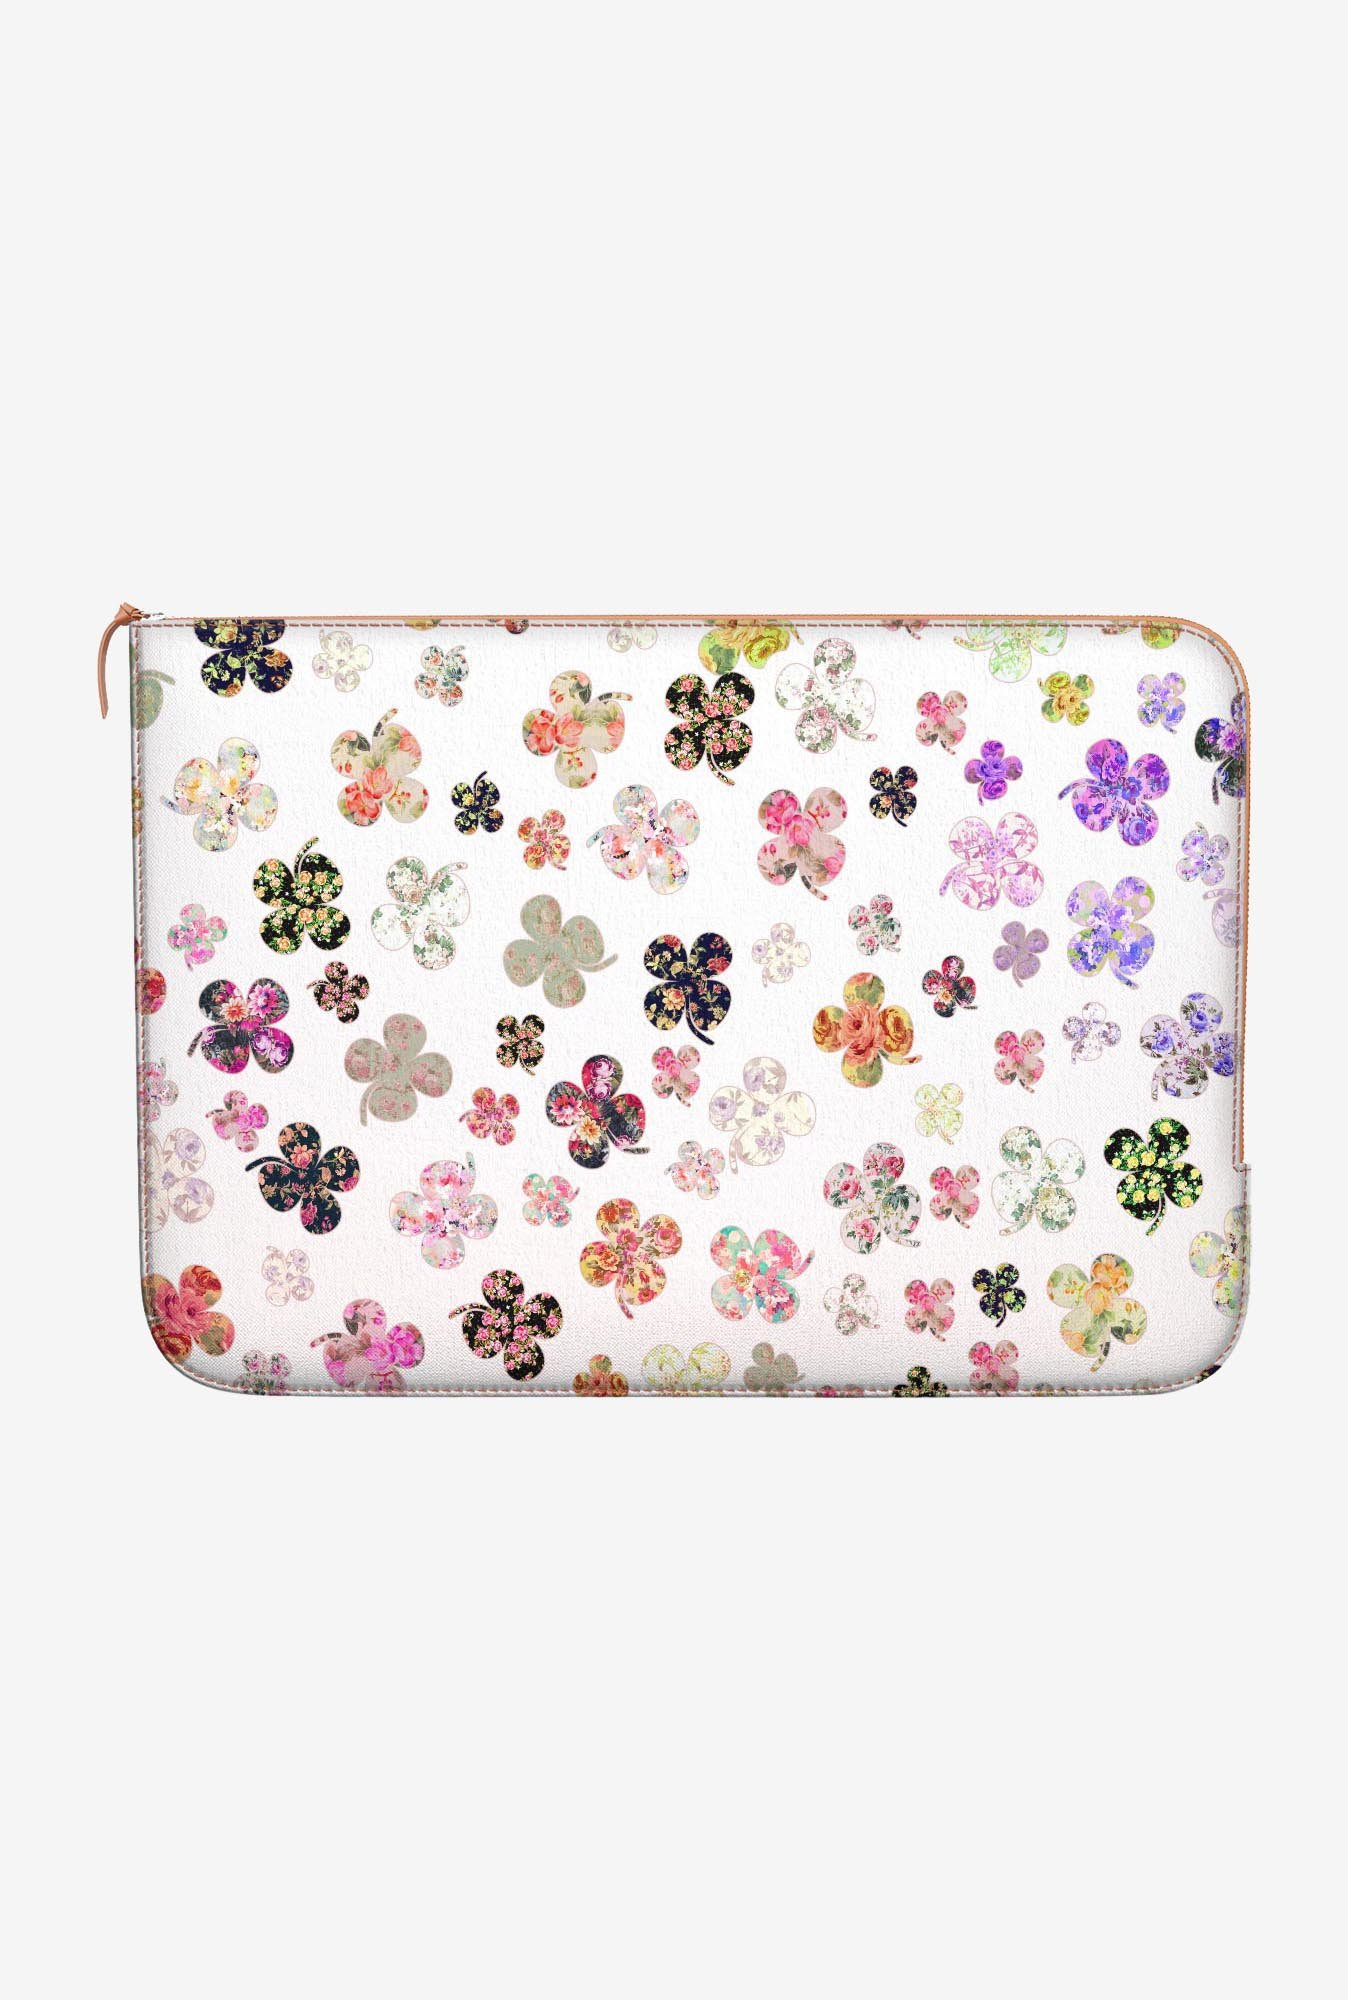 DailyObjects Floral Clovers MacBook Pro 13 Zippered Sleeve